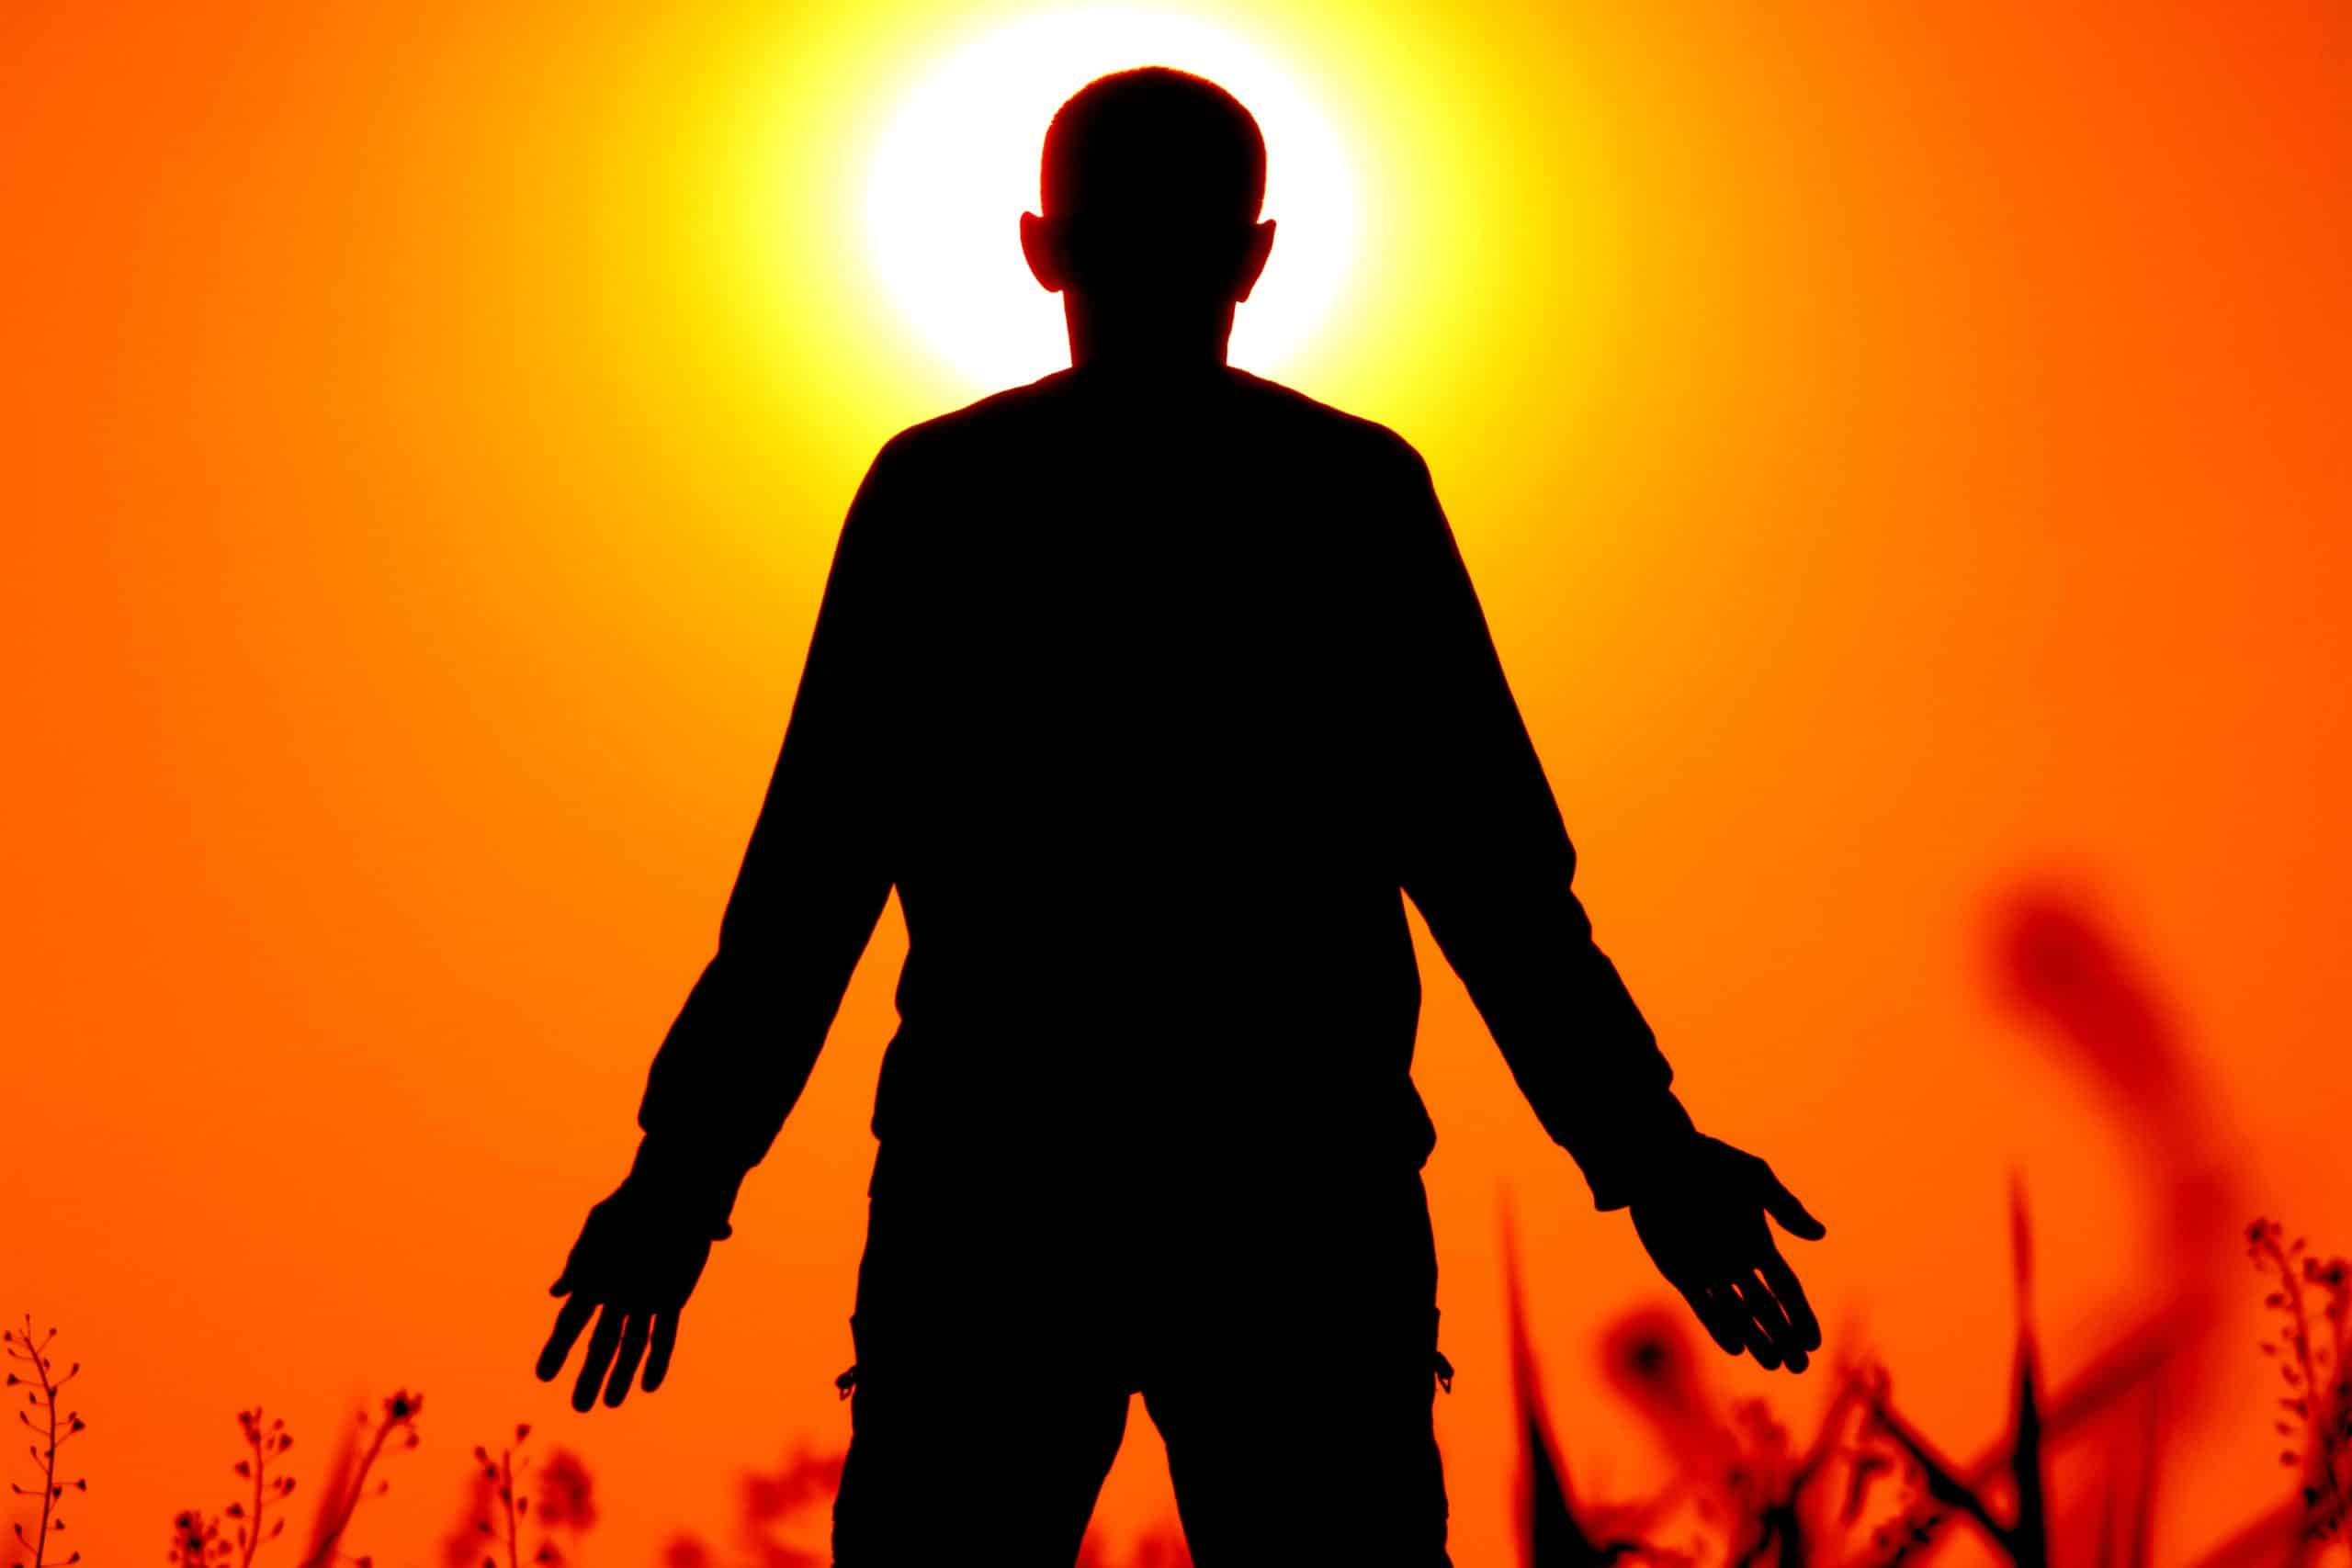 outdoor-silhouette-person-blur-people-sun-636163-pxhere.com_